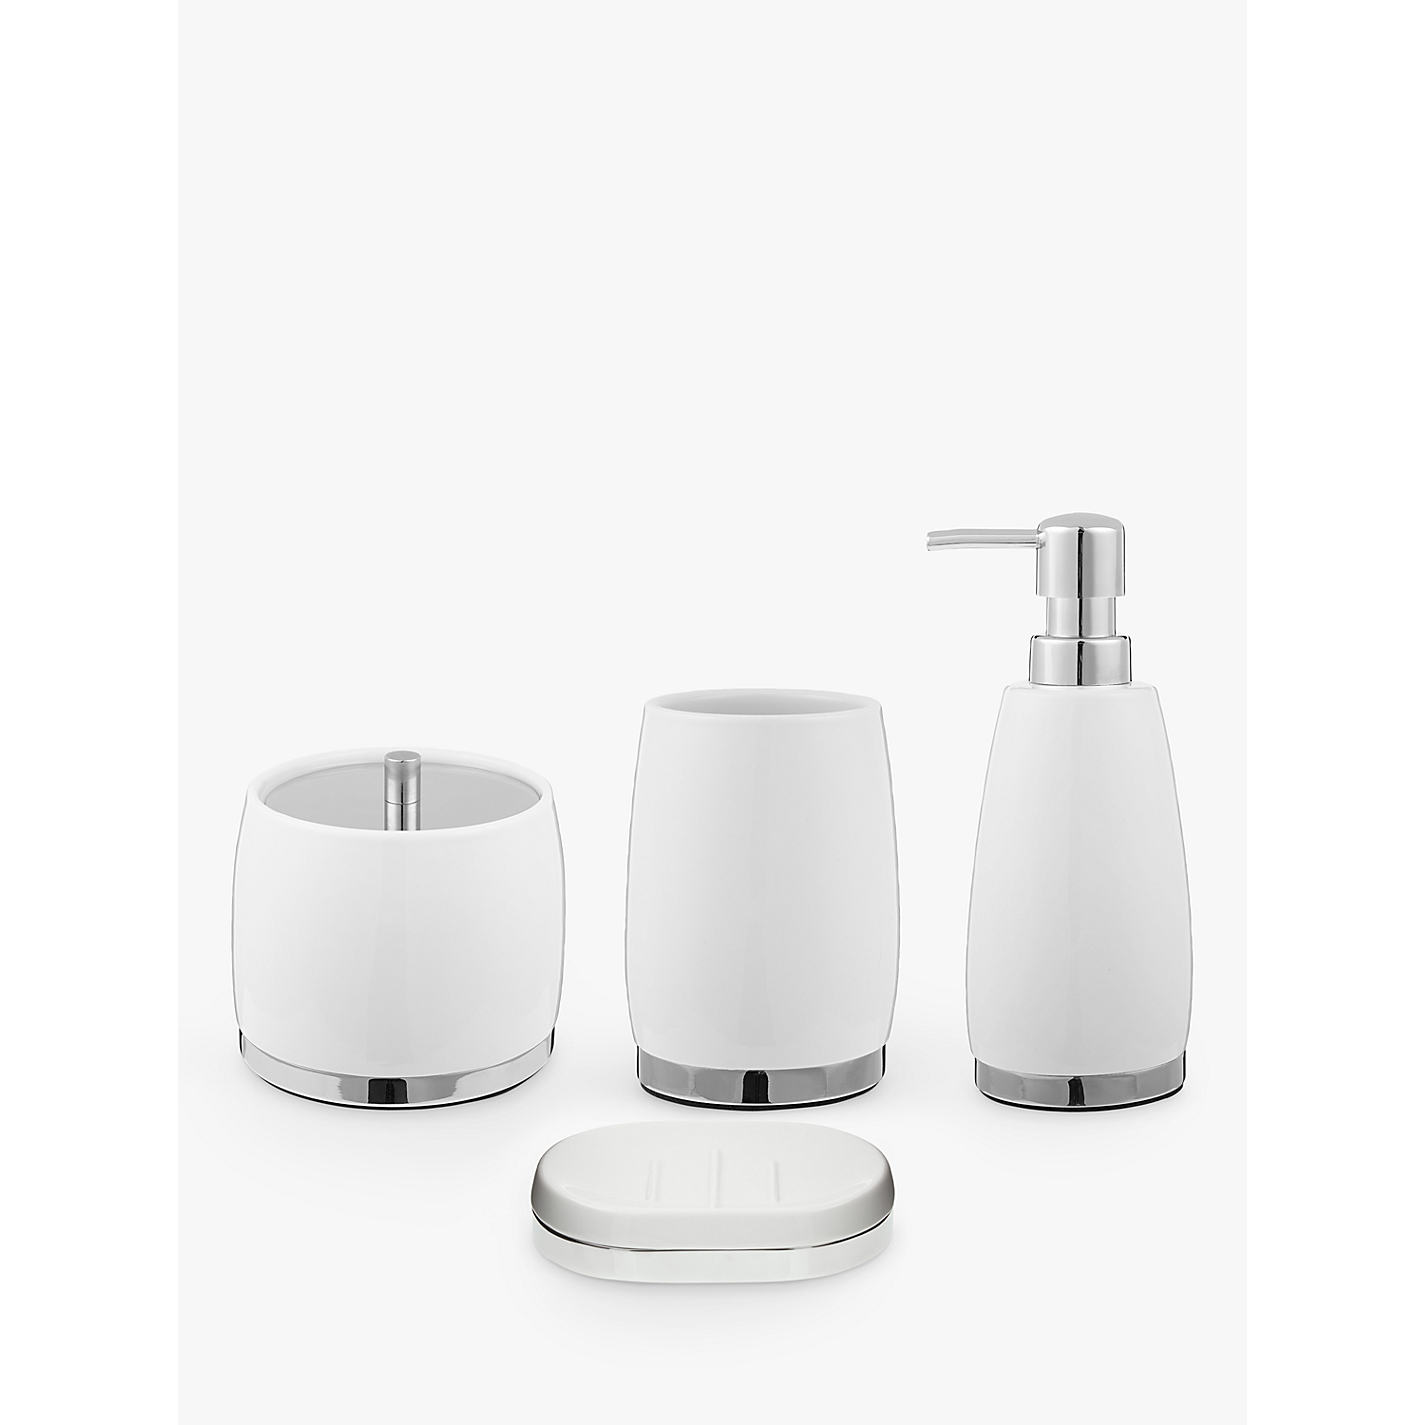 buy john lewis london bathroom accessories online at johnlewiscom - Bathroom Accessories London